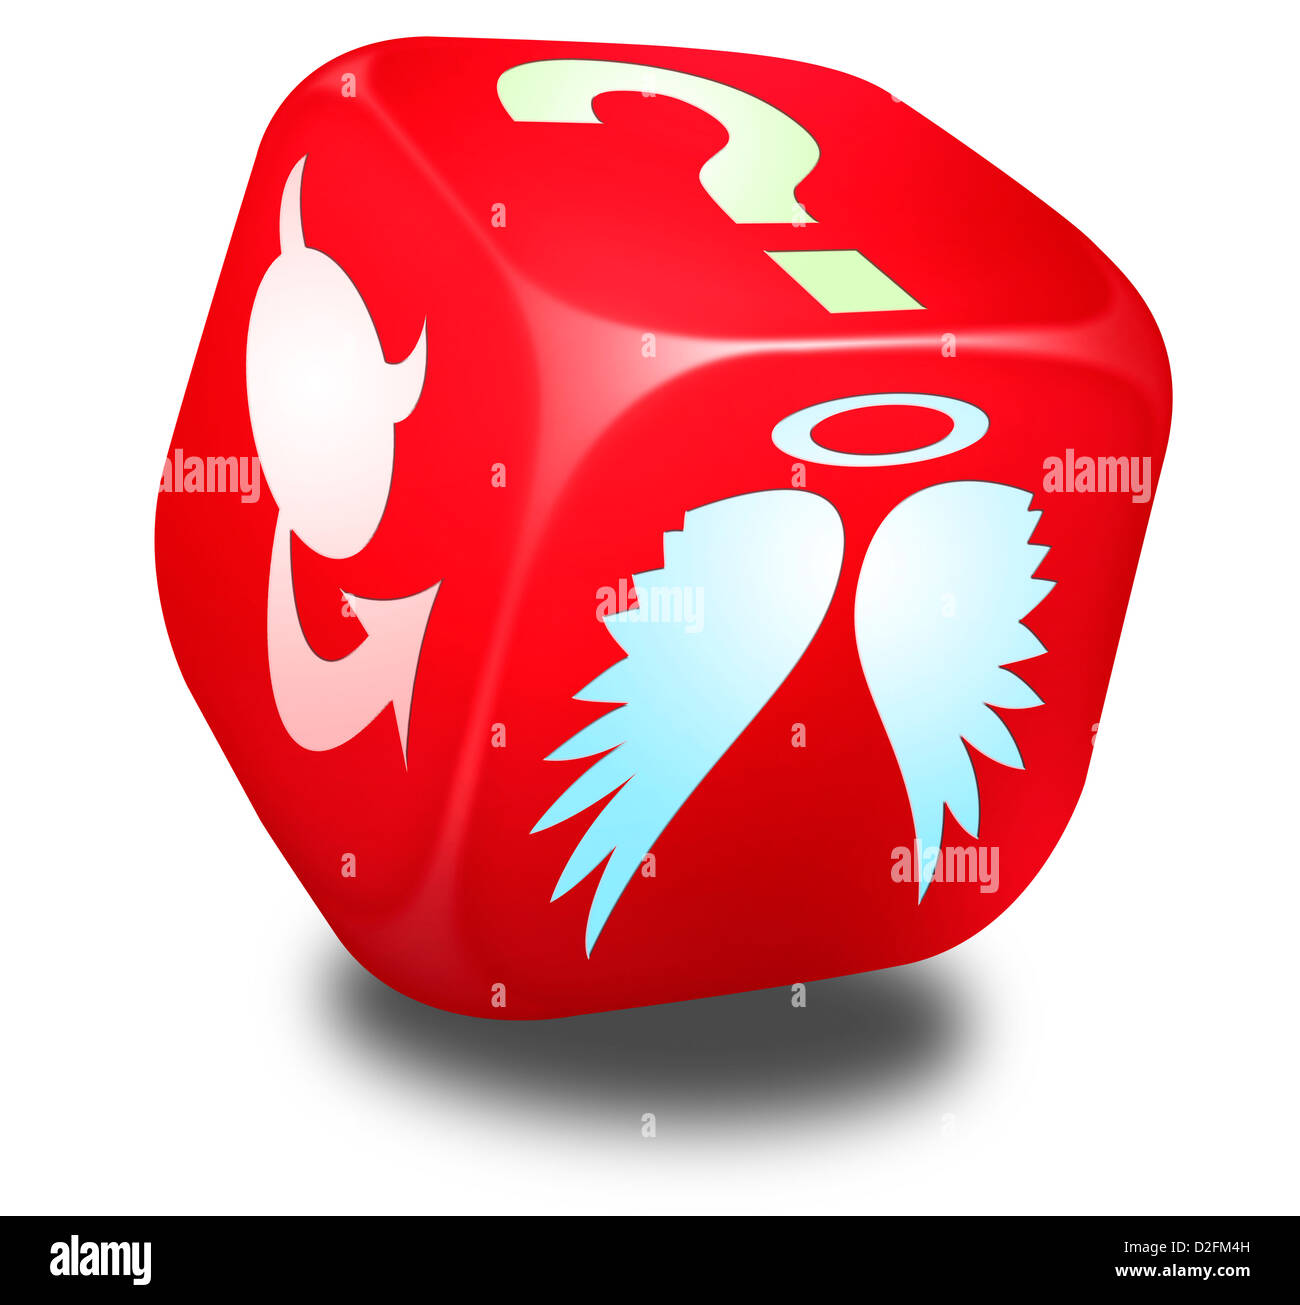 Red dice with symbols representing and Angel, the Devil and a Question mark on its sides - Choices concept - Stock Image